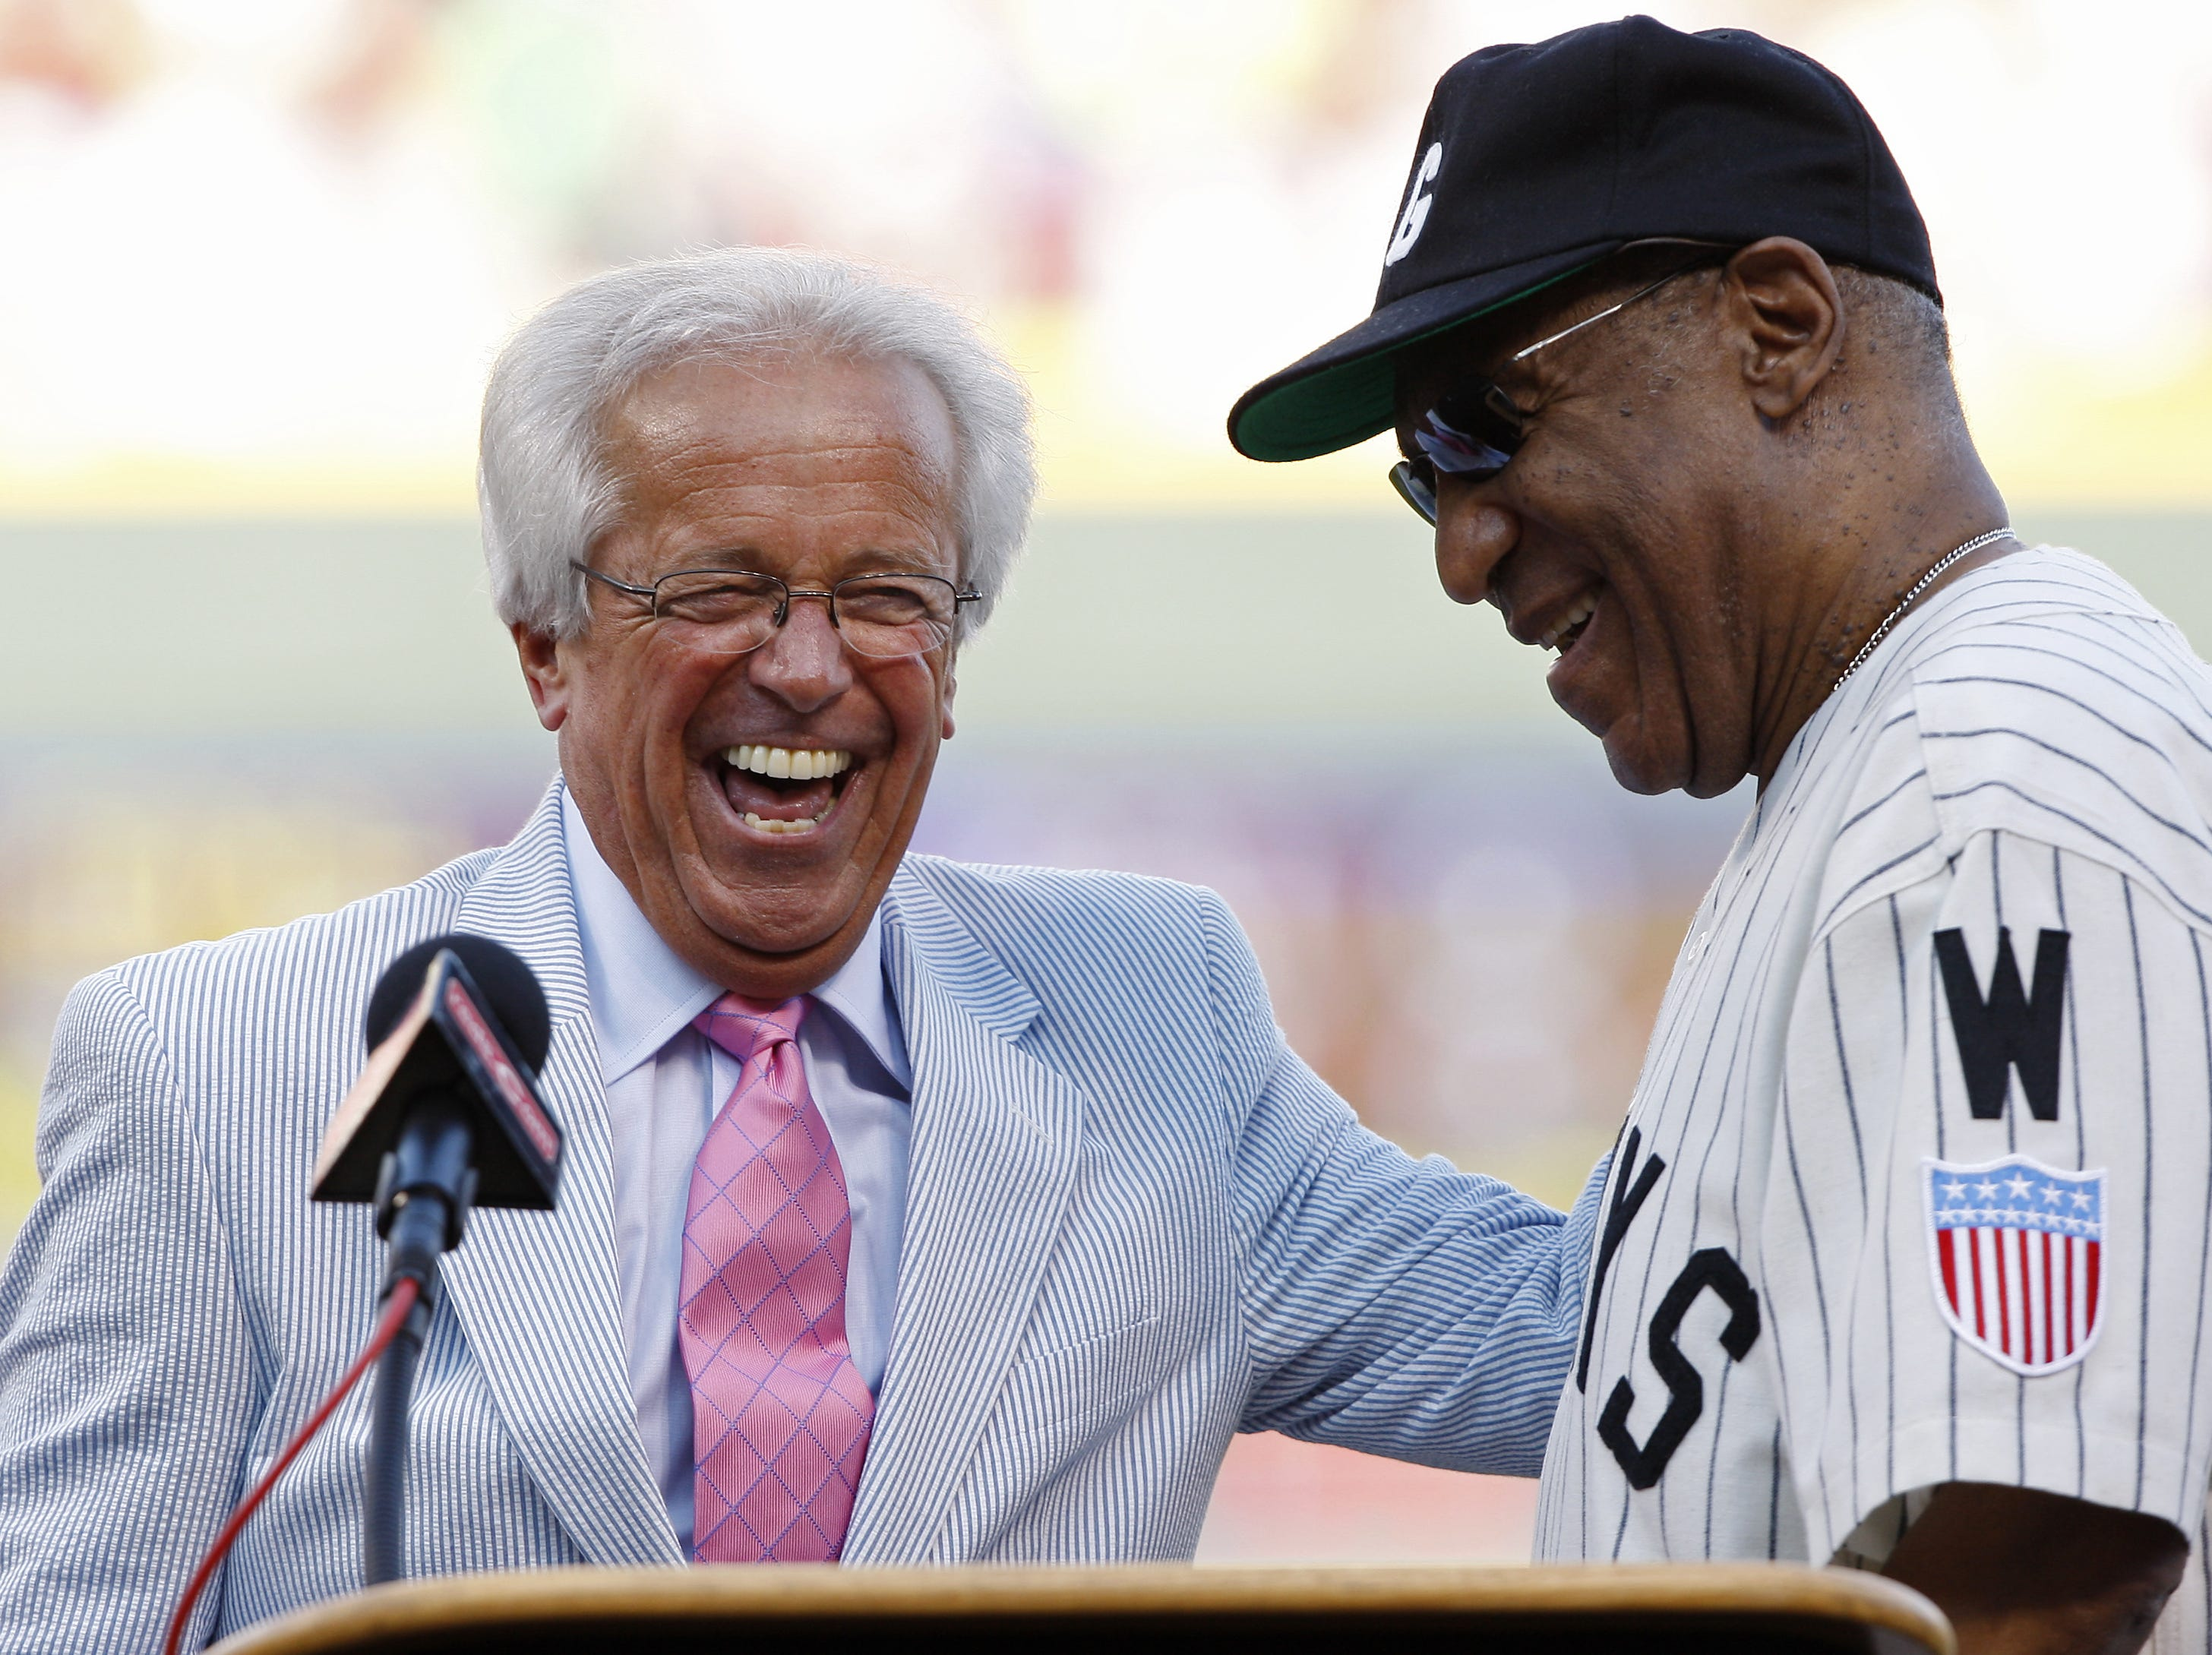 2009.06.20 REDS SPORTS :  The Cincinnati Reds announcer Marty Brennaman and MLB Beacon of Hope Award recipient Bill Cosby joke around during the pre-game ceremonies before the Cincinnati Reds Chicago White Sox Major League Baseball Gillette Civil Rights Game at Great American Ball Park Saturday June 20, 2009. The Enquirer/Jeff Swinger